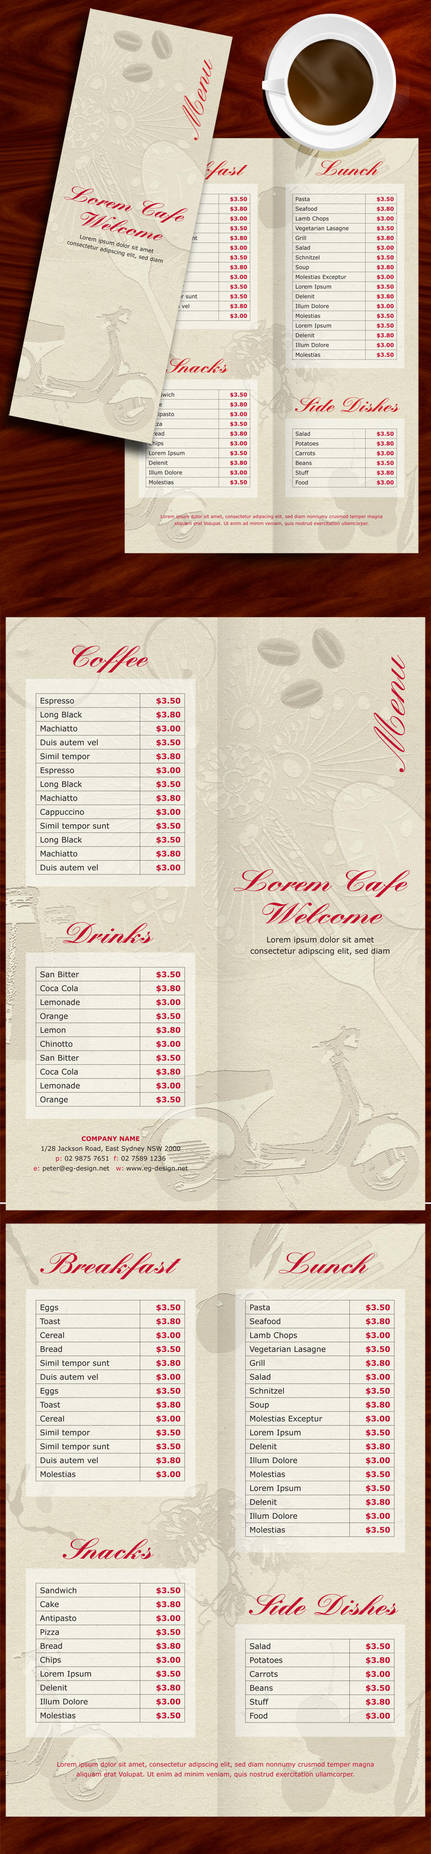 menu by egdesign01